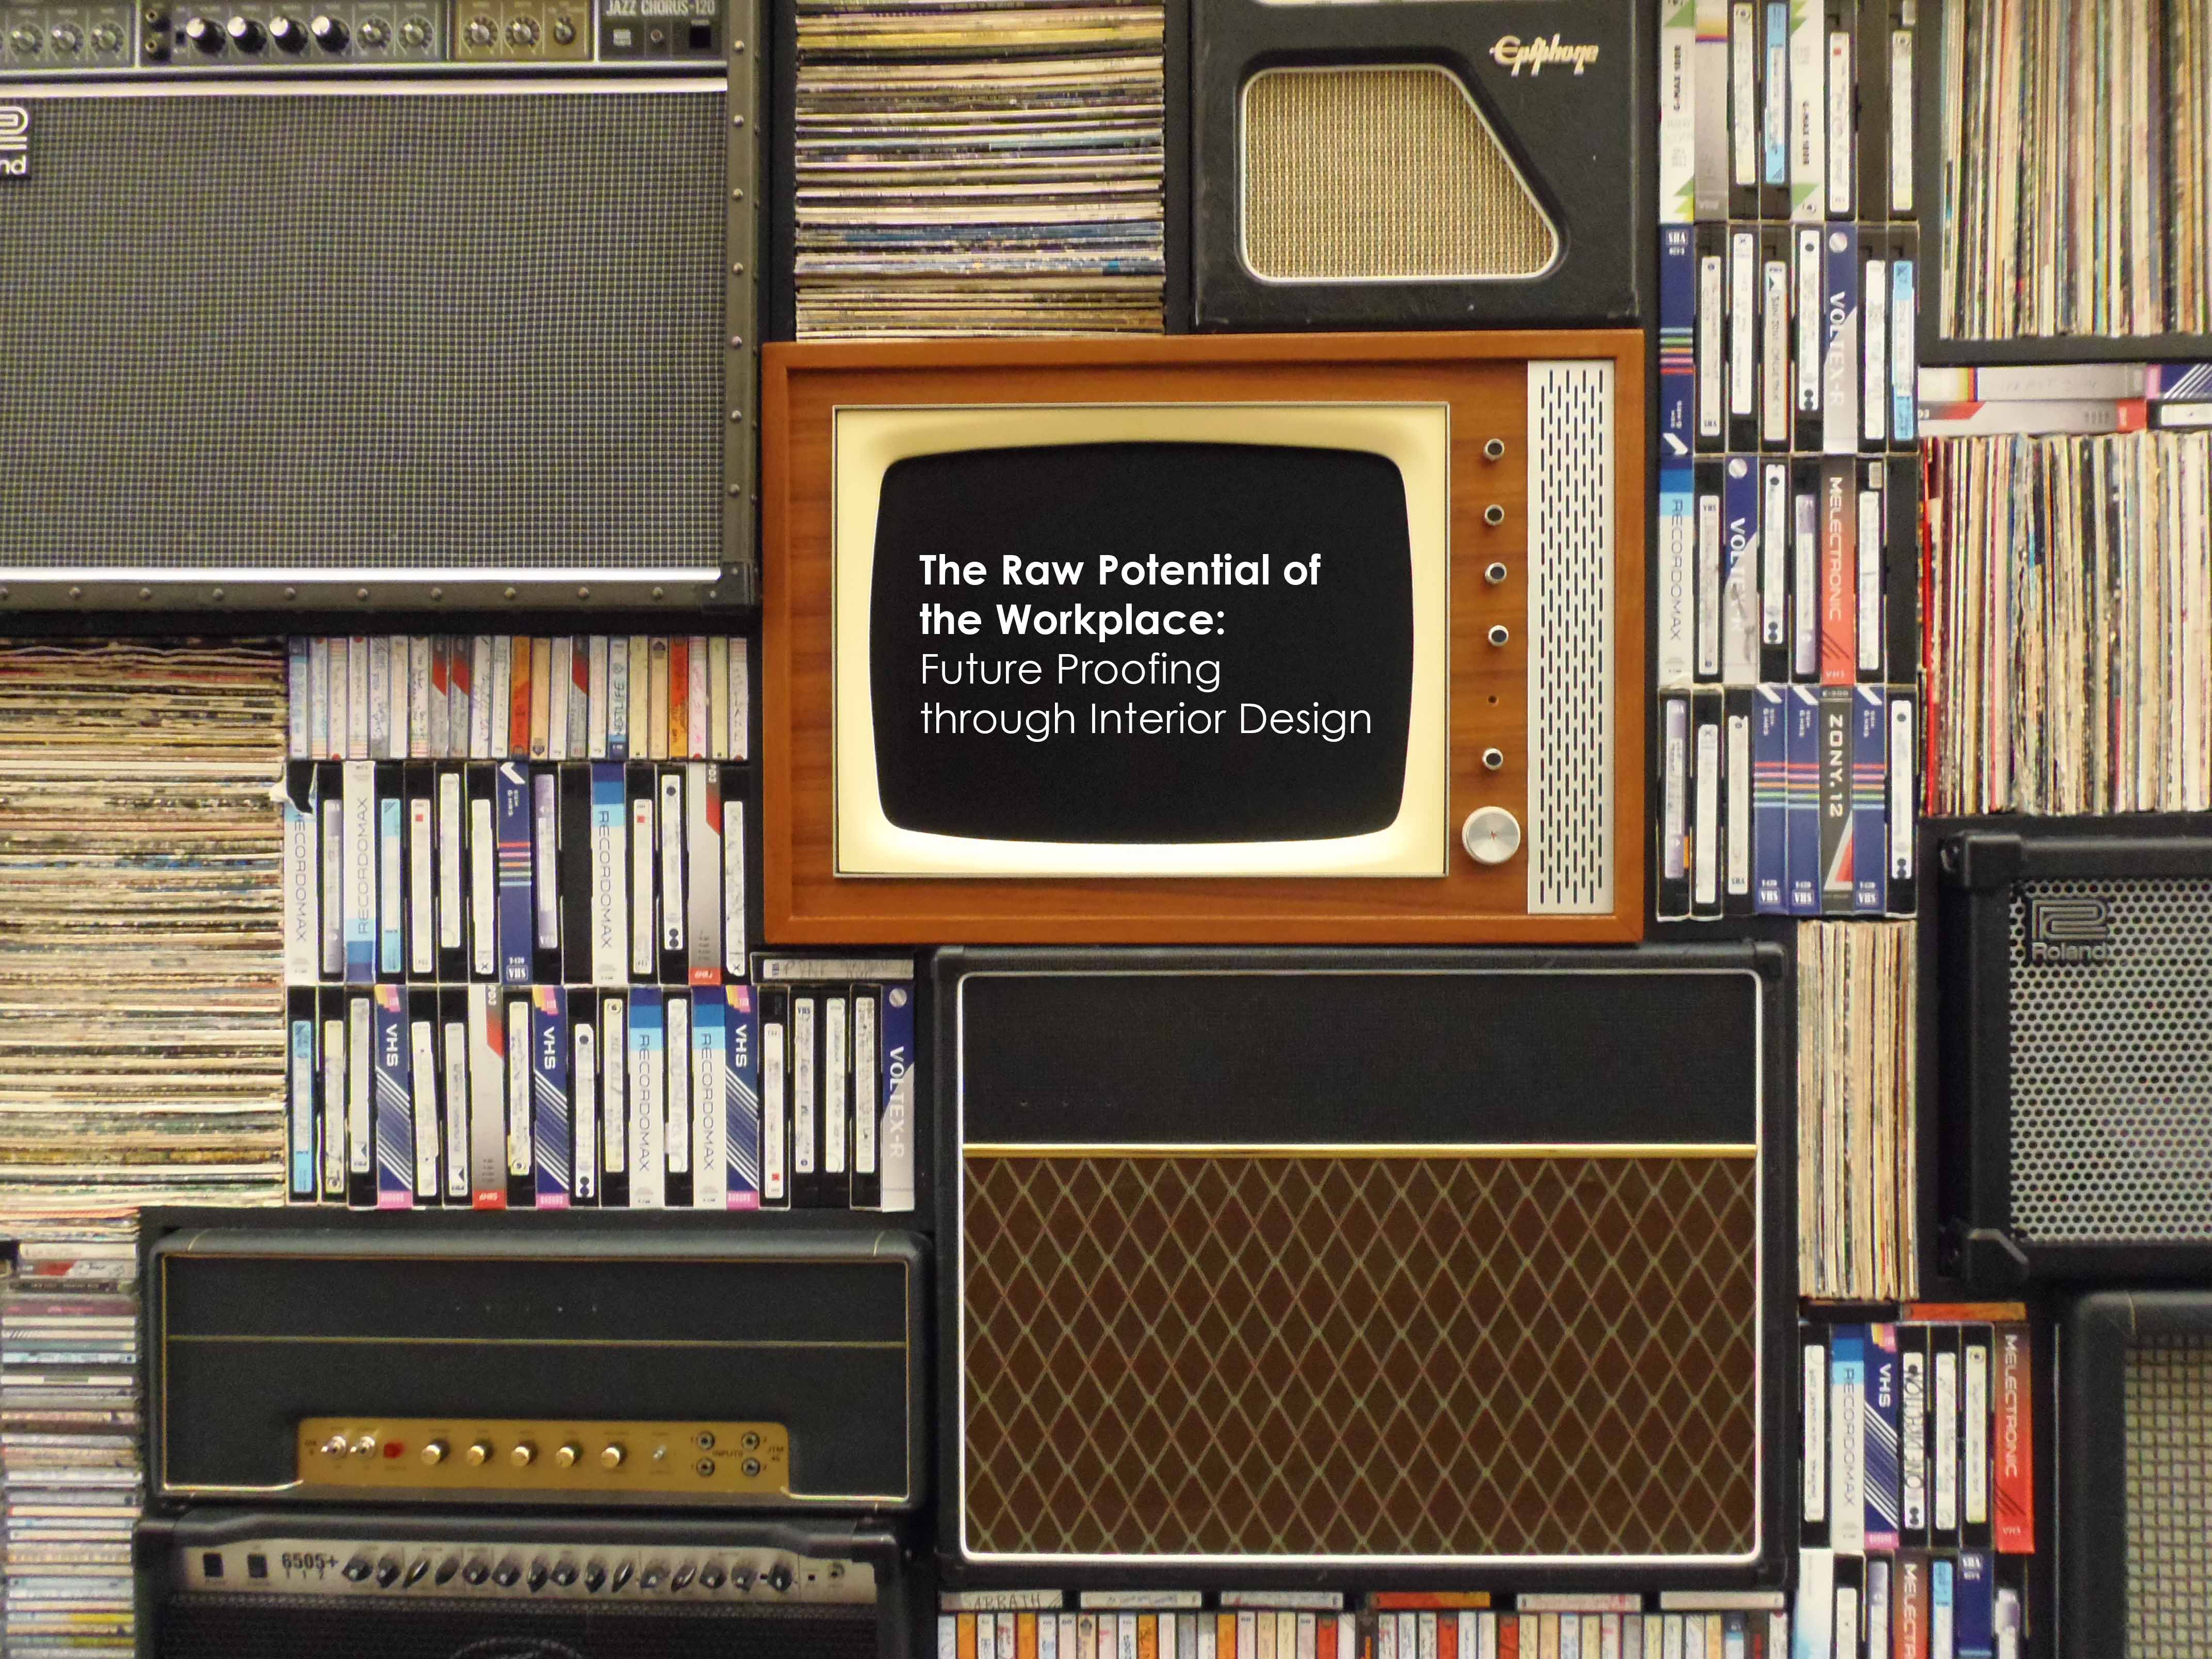 Old media & technology stacked up, interior design